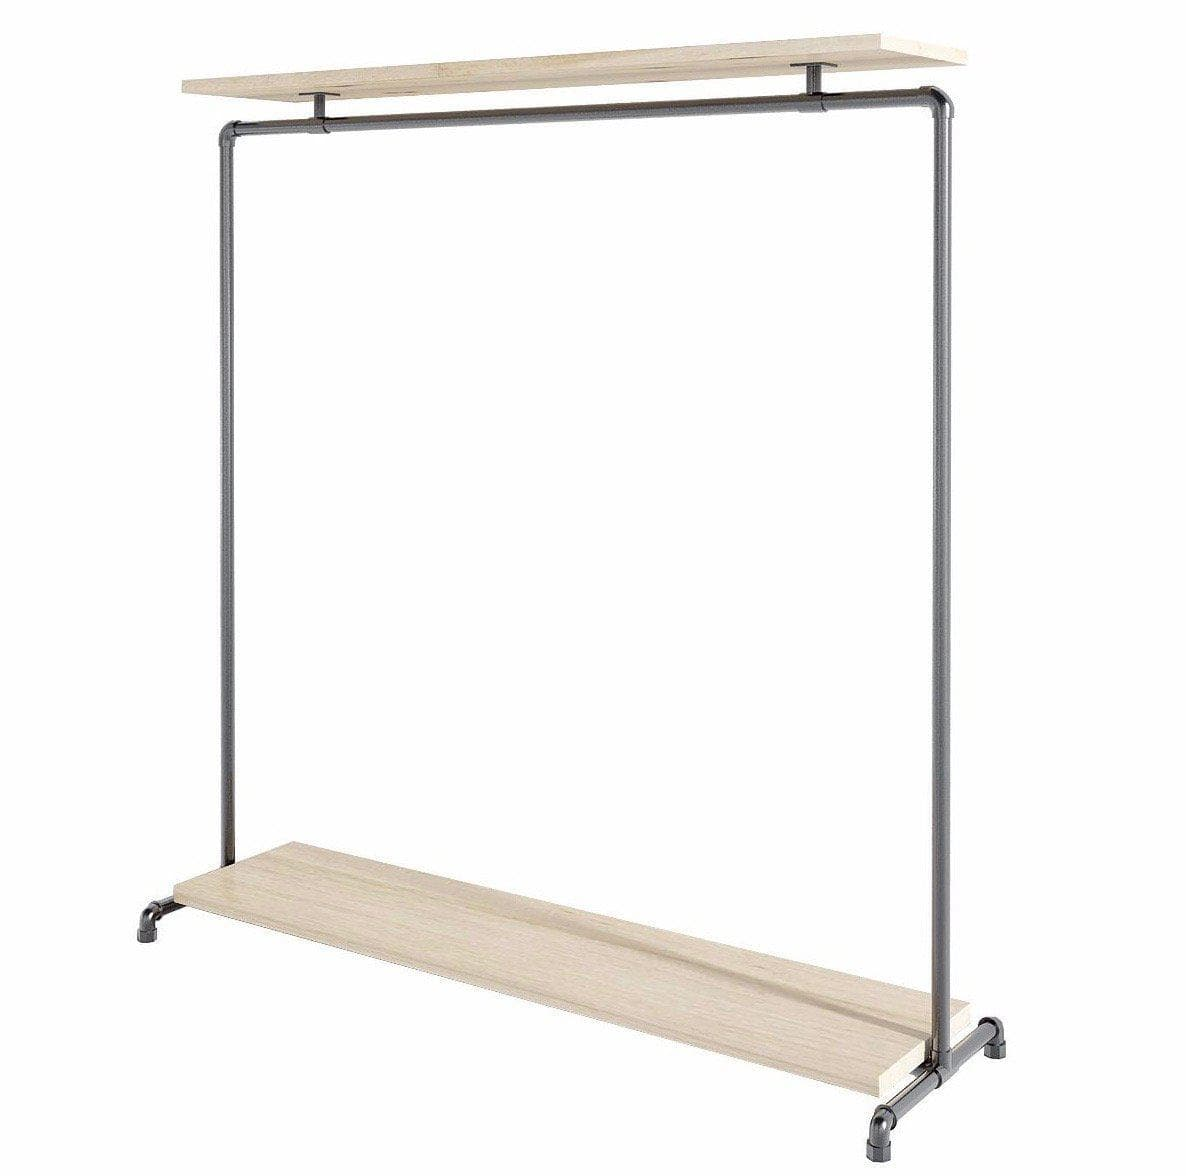 Ziito Clothes Rail Wood Double Shelf Tøjstativ